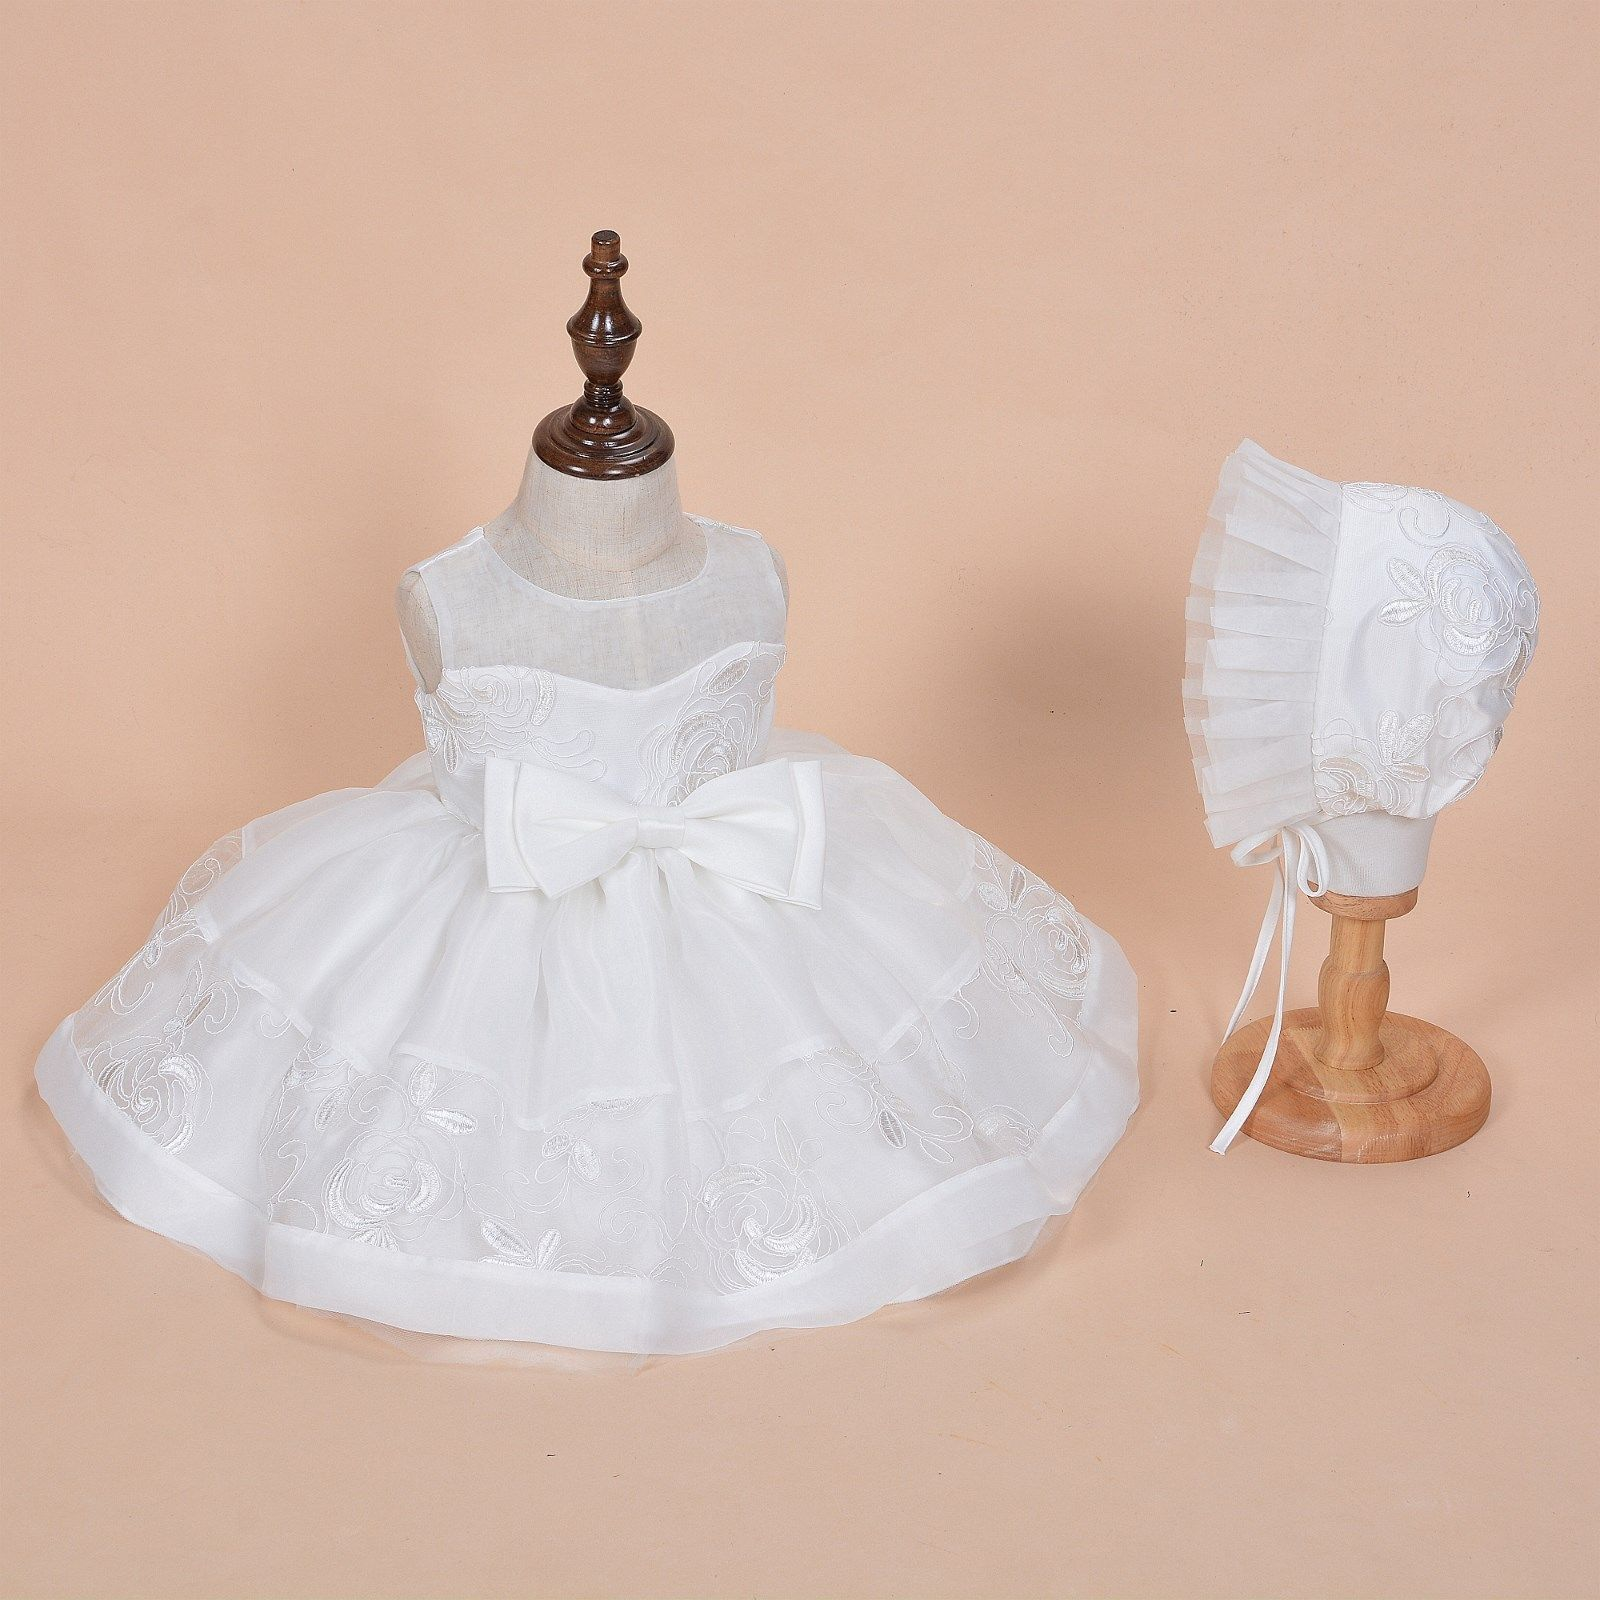 19d78d732c37 New Girls Ivory Lace Christening Party Dress and 50 similar items